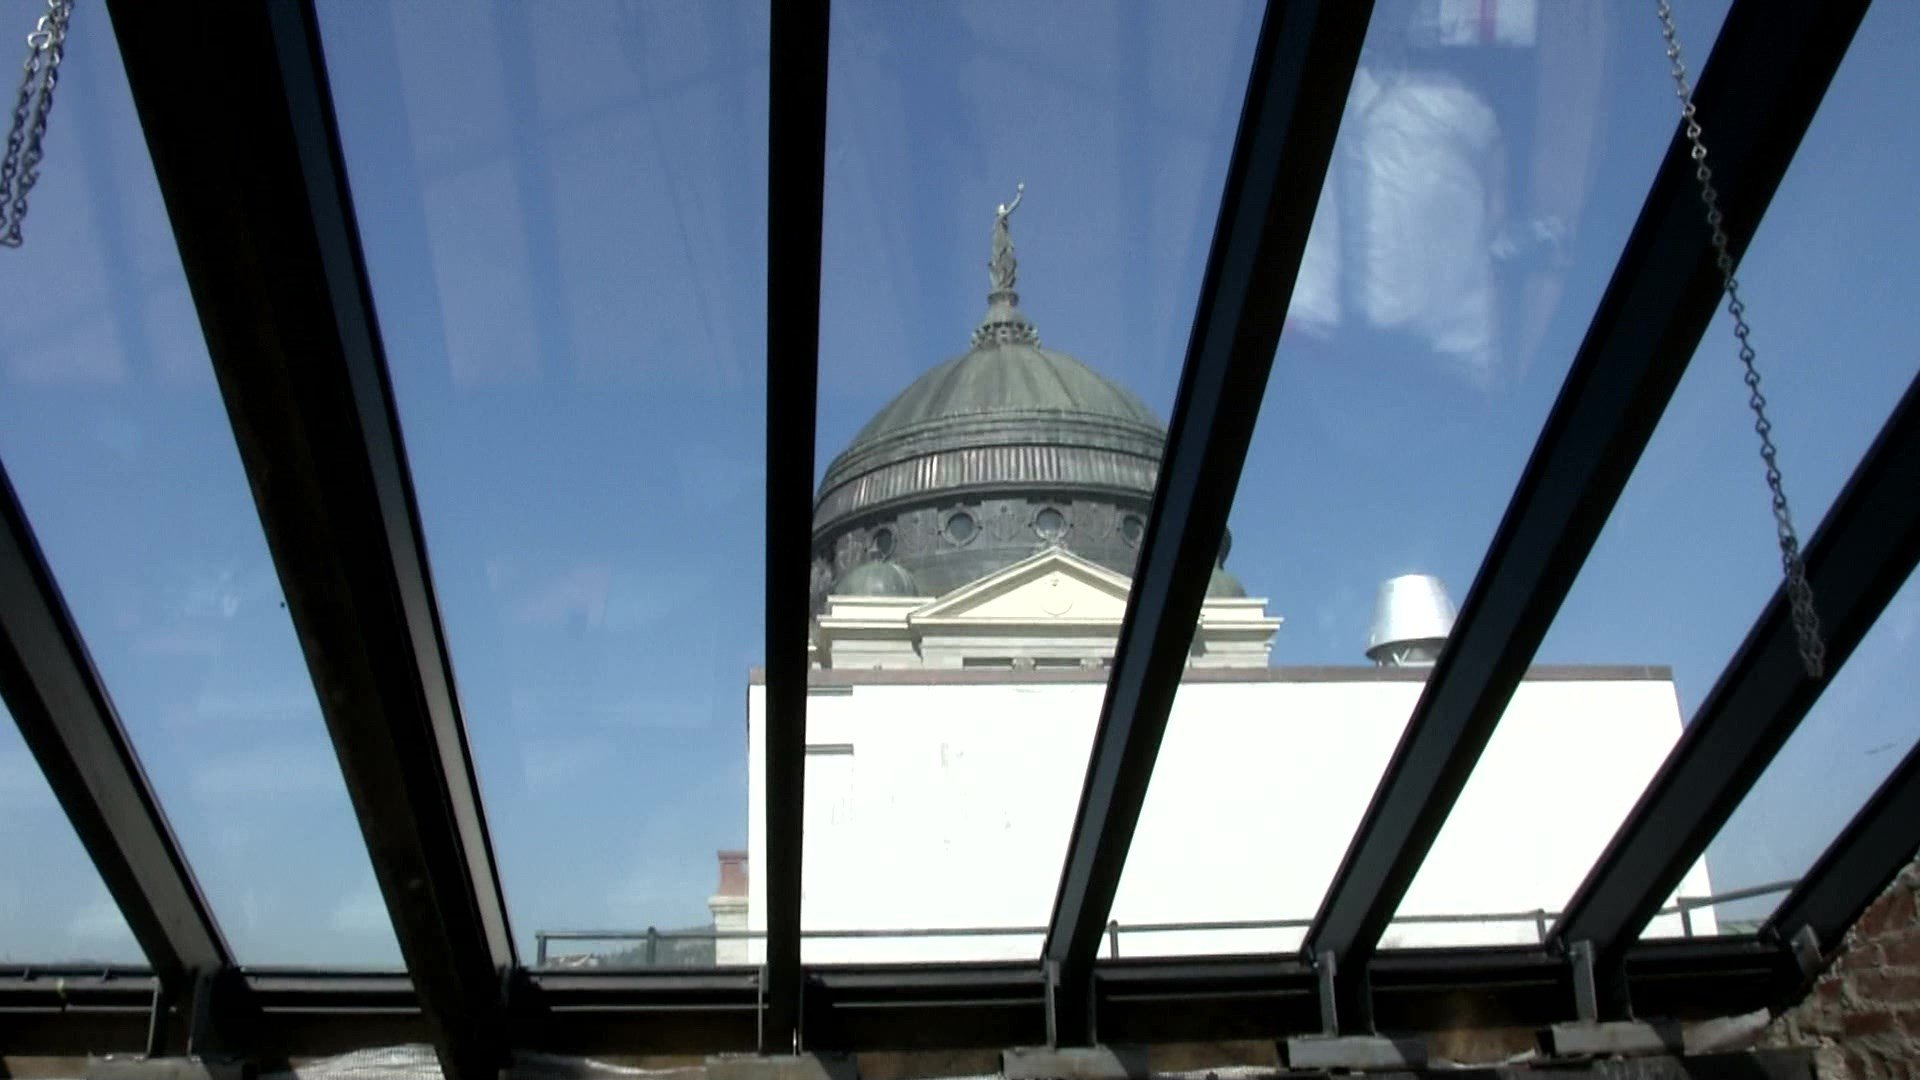 Skylights at Capitol are being replaced